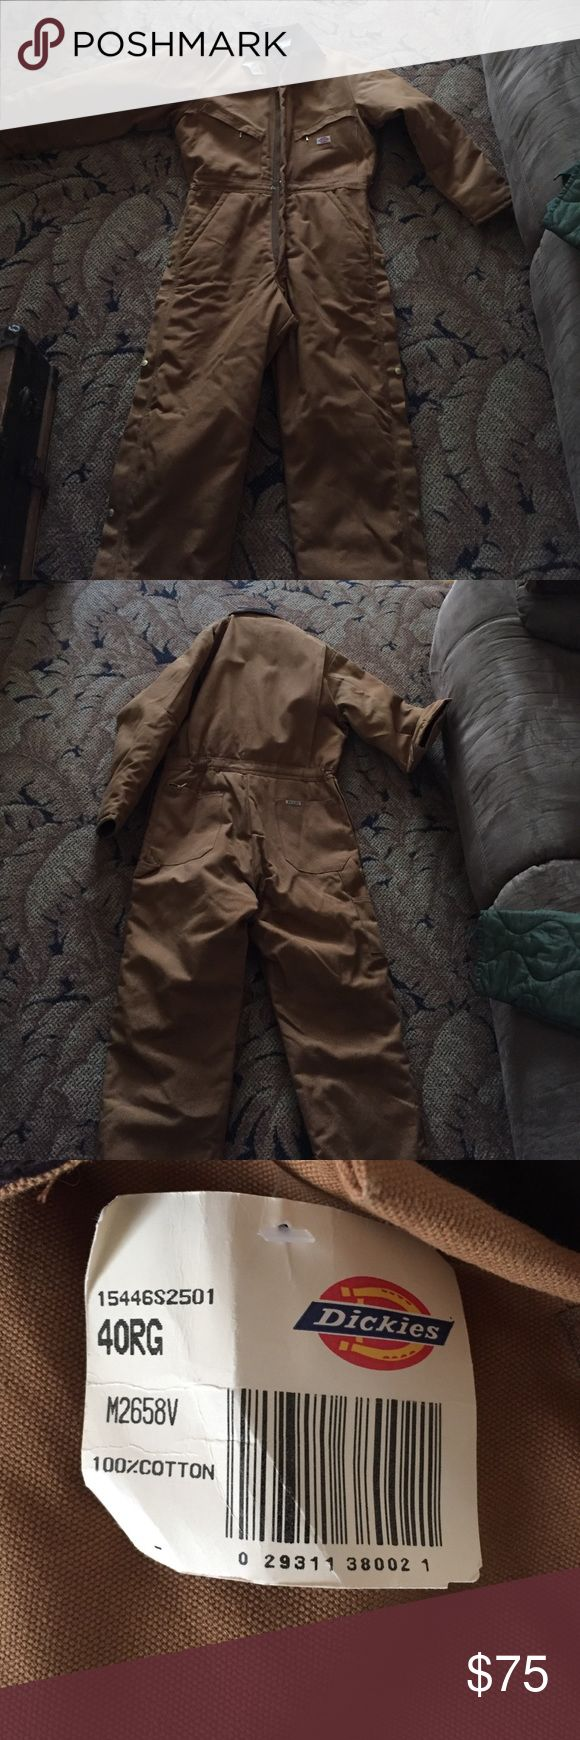 Men's Dickies premium insulated coveralls NWT men's size 40 regular coveralls classic Dickies brown duck coveralls with polyester insulation and brown corduroy collar offer water repellent warmth for the worst weather. Zip to waist and zip and snap legs for easy on-off over clothes. Paid '$79.99 at Cabela's Dickies Other